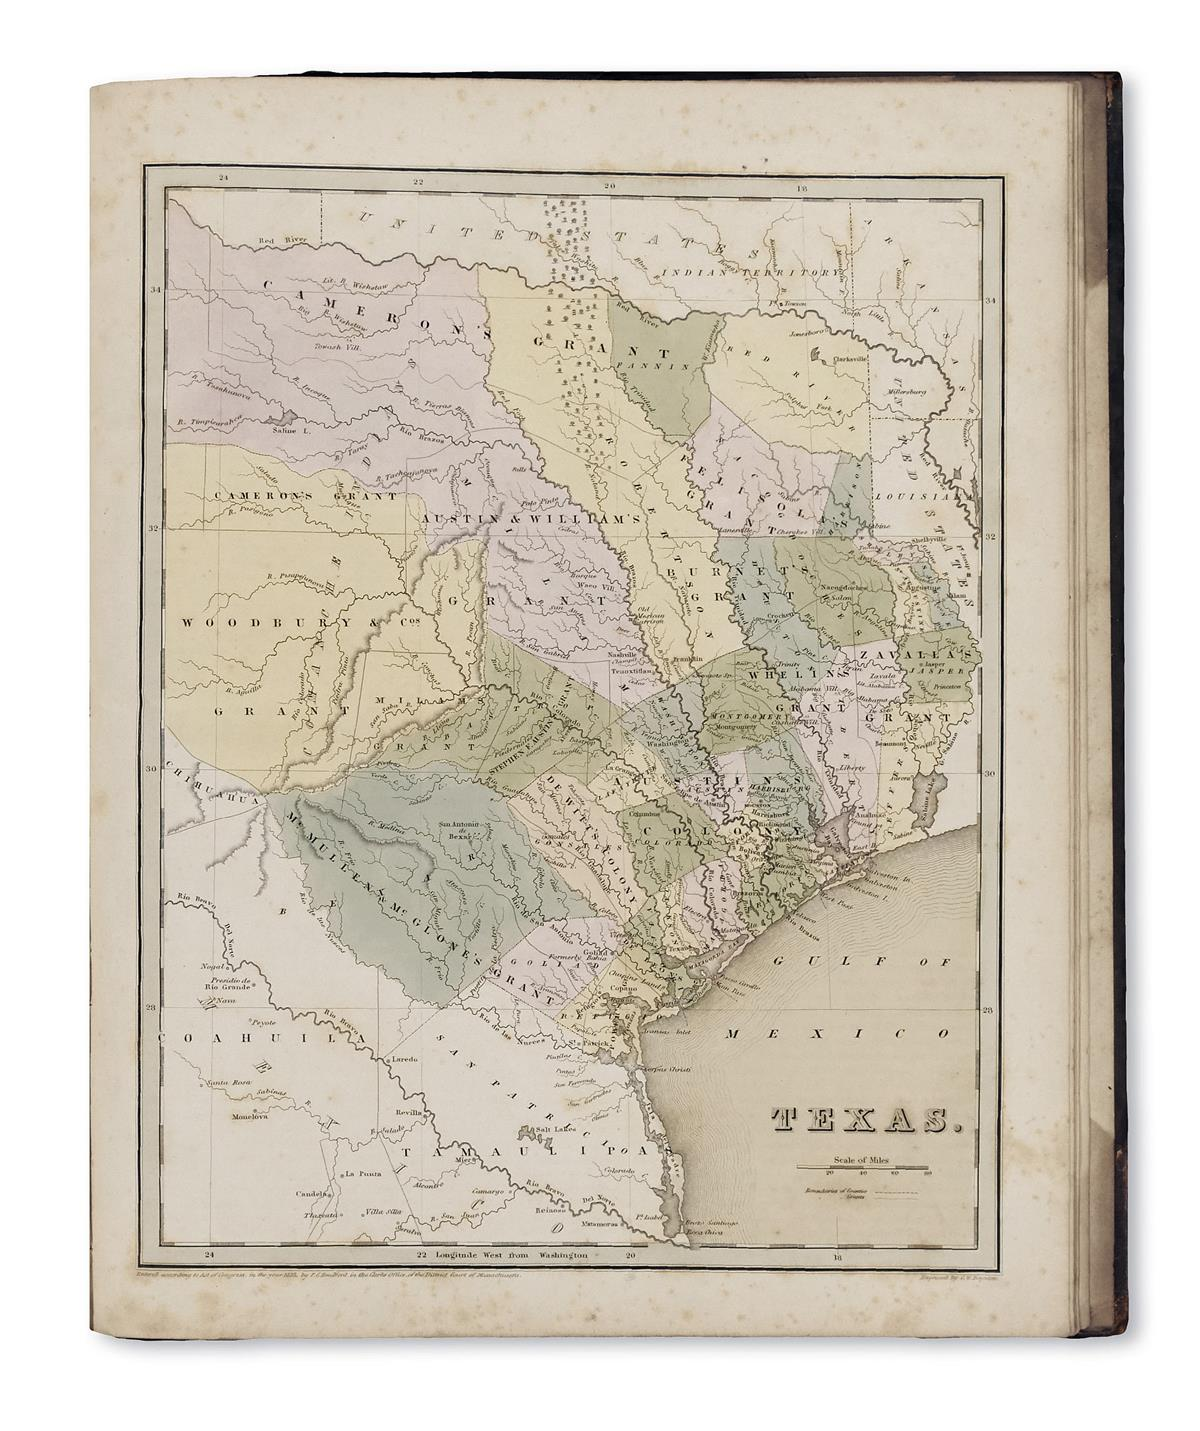 BRADFORD, THOMAS GAMALIEL. An Illustrated Atlas, Geographical, Statistical, and Historical, of the United States,